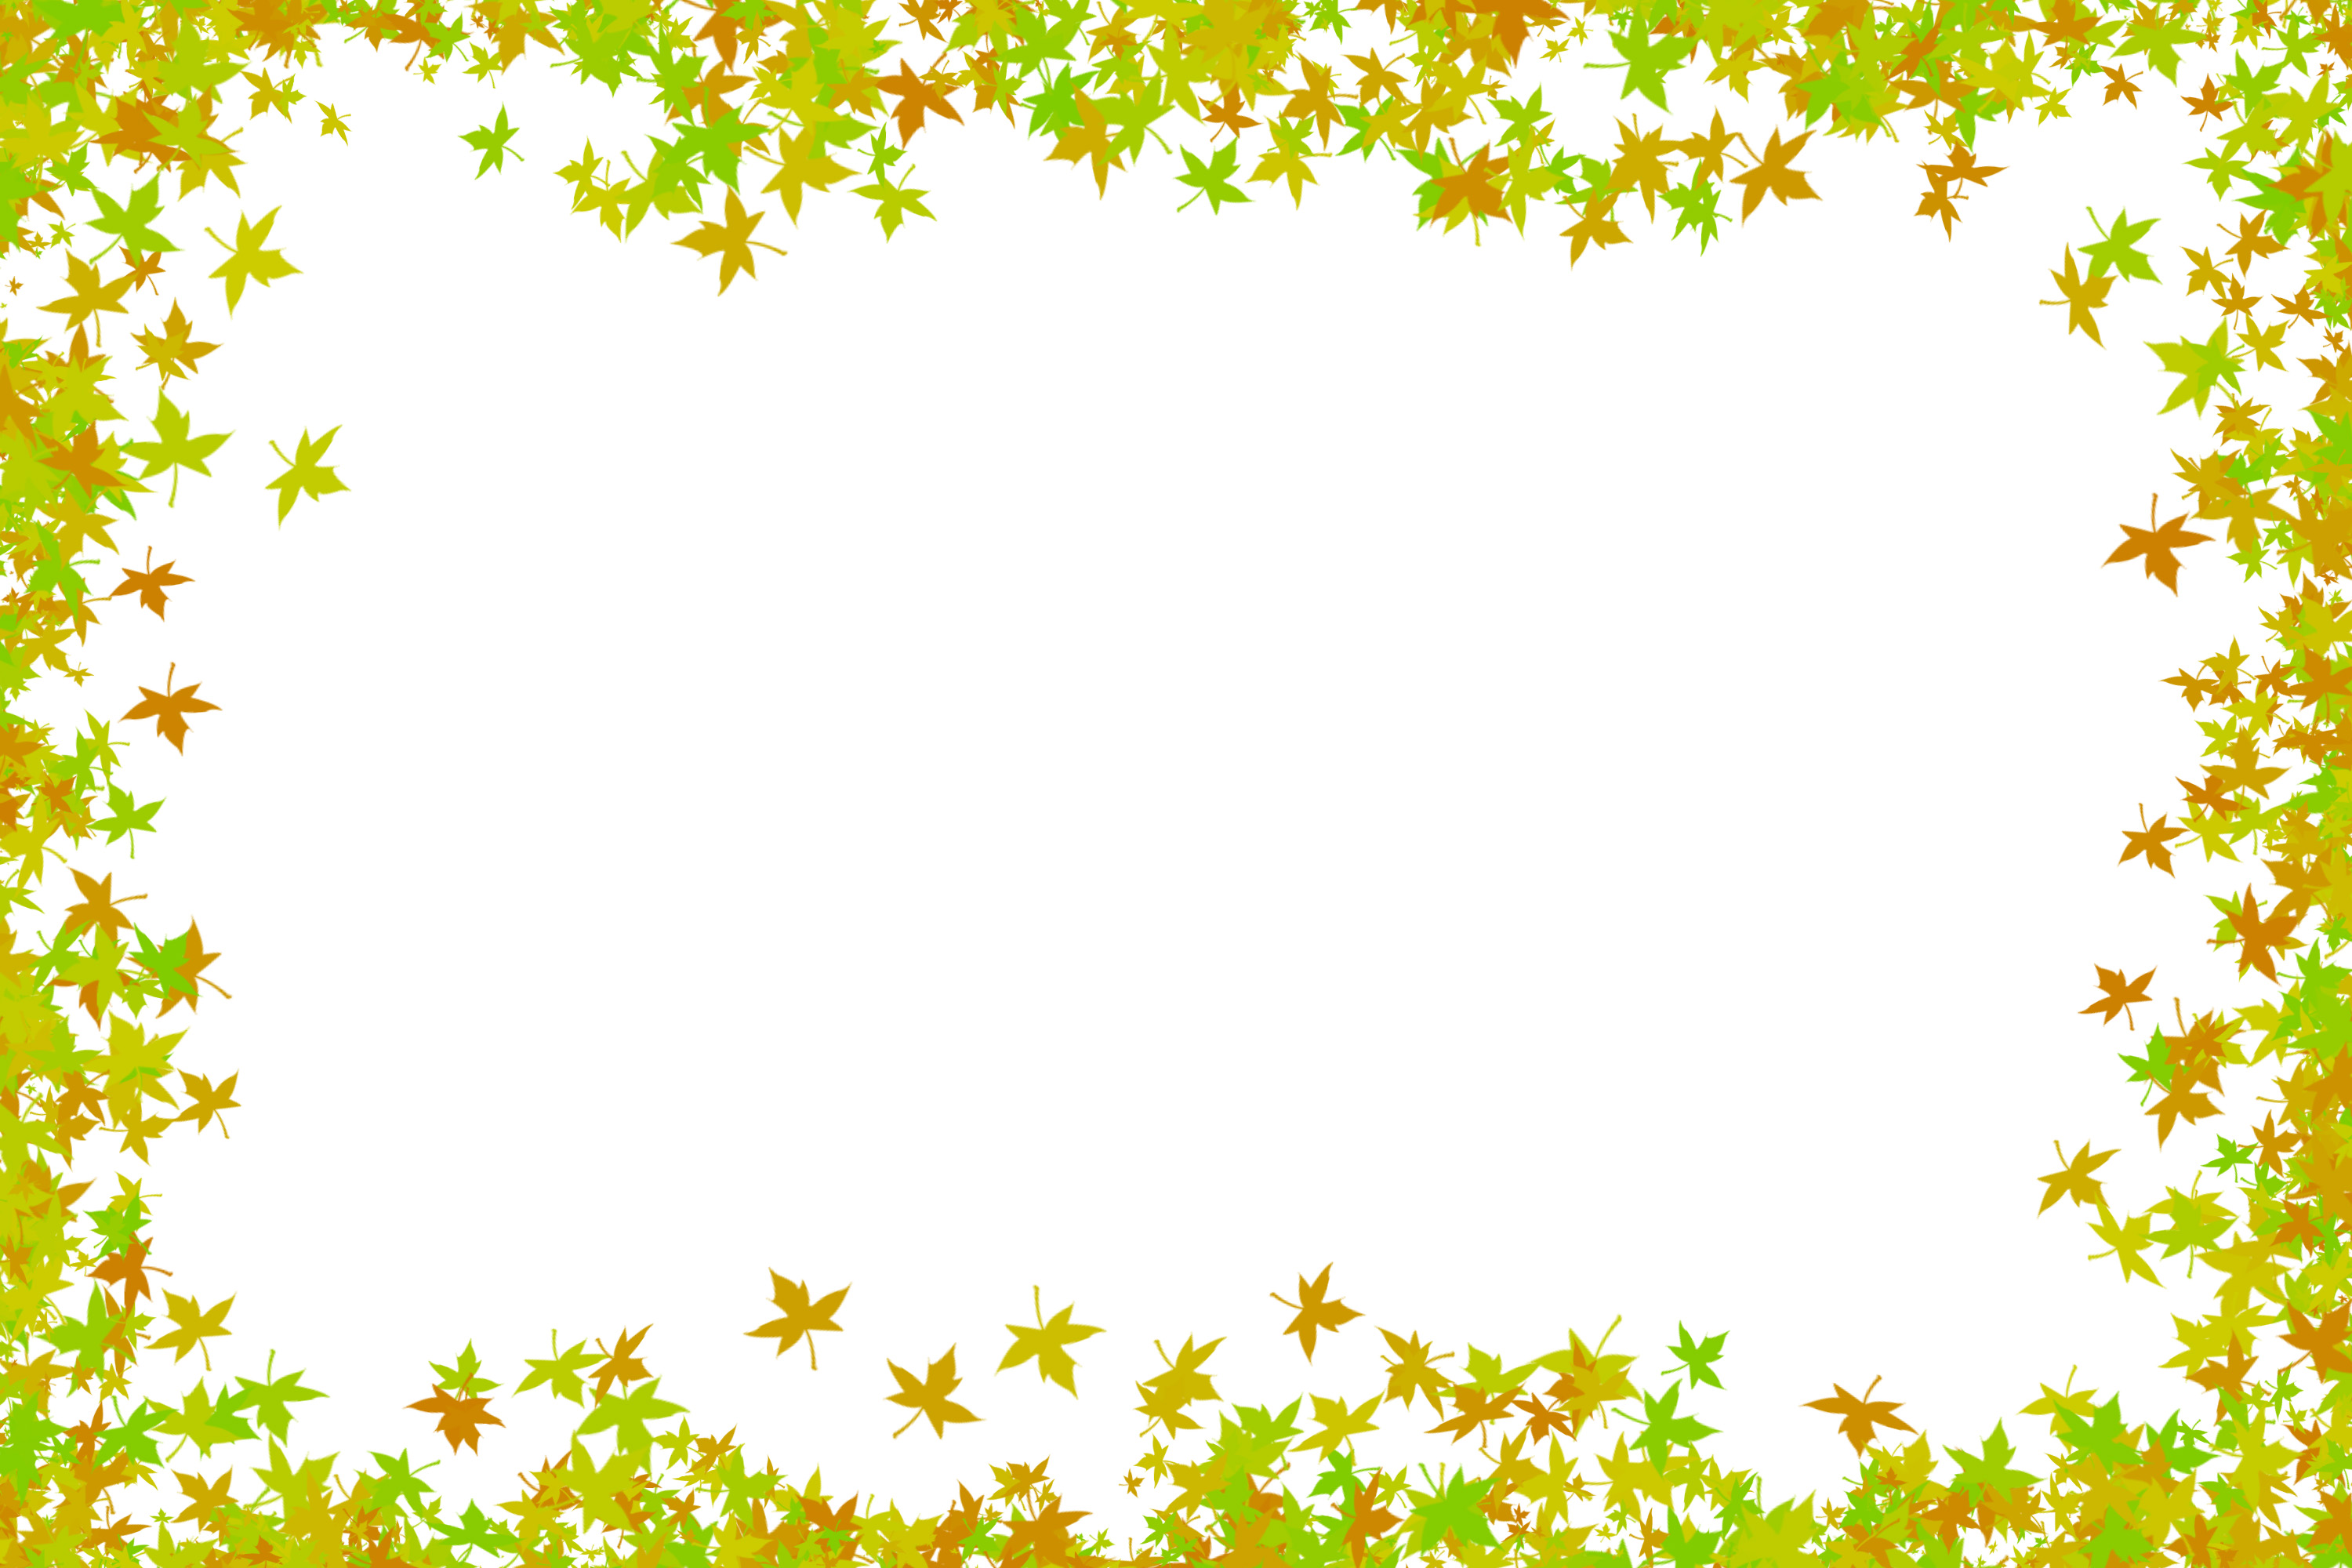 Image Collections » Graphic » maple leaves frame